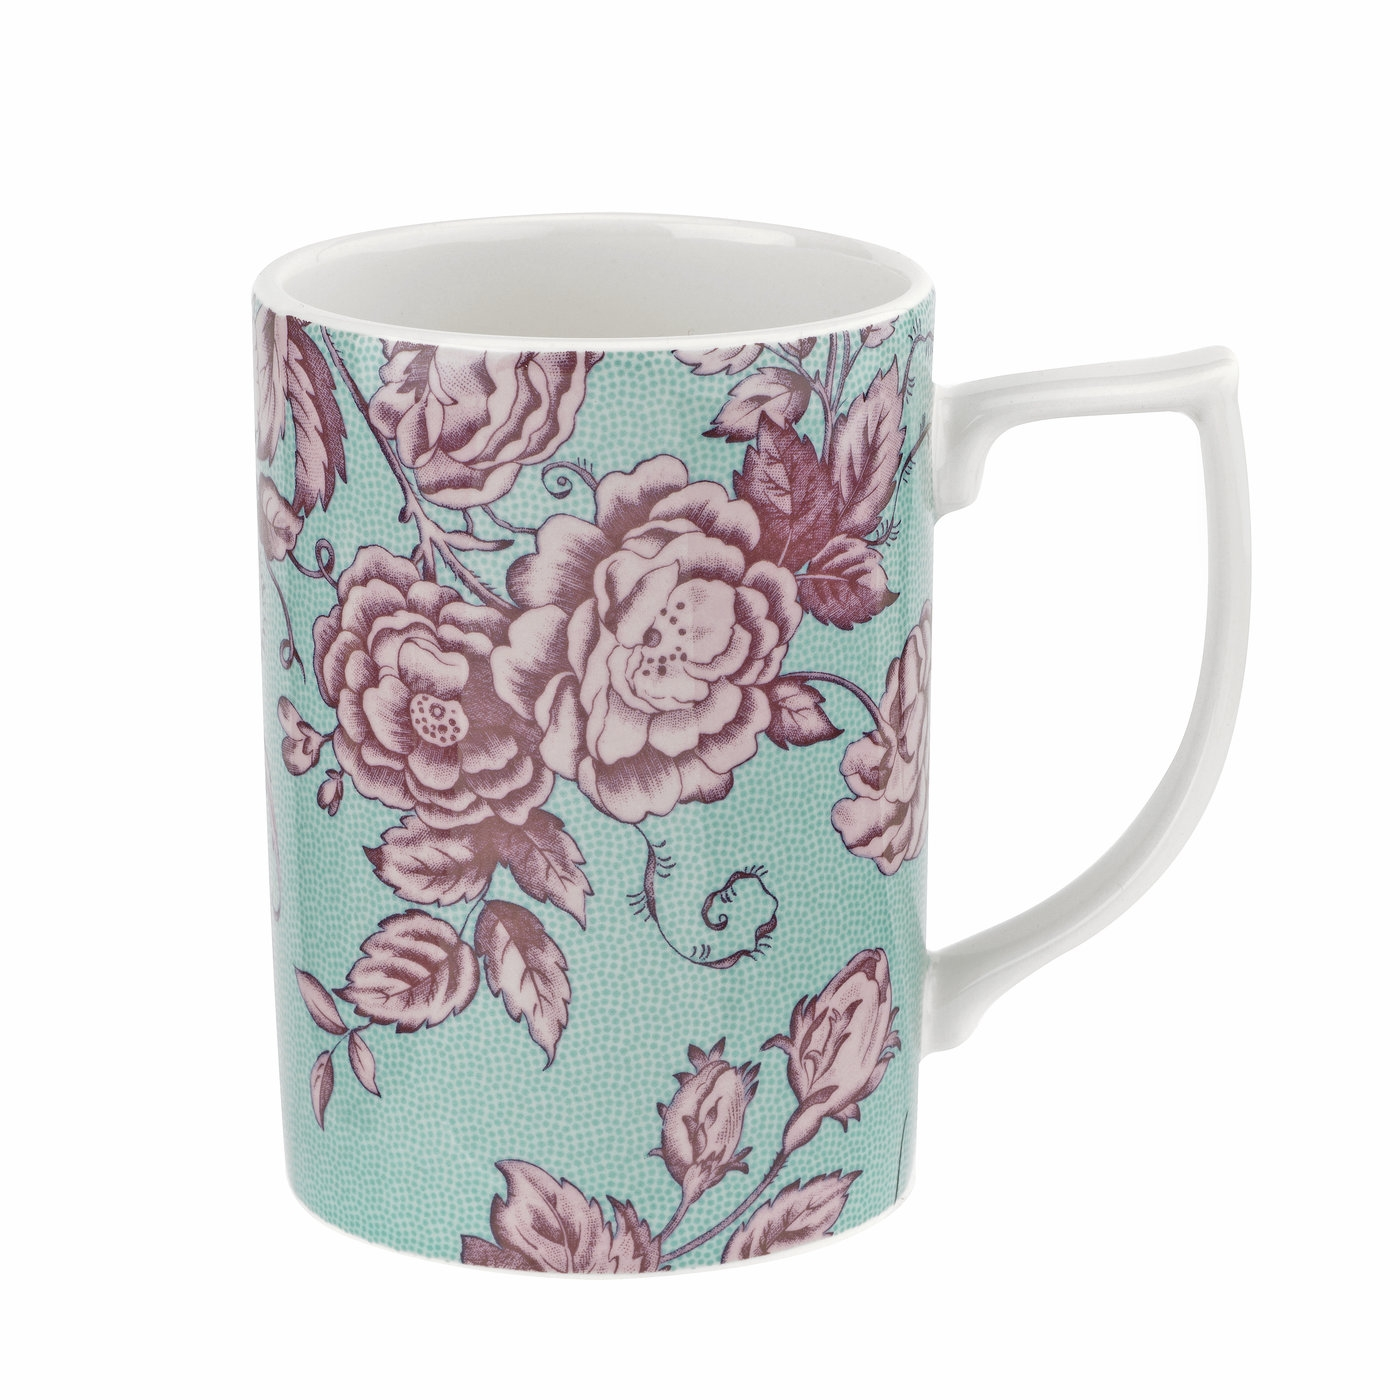 Spode Kingsley Teal 12 oz Mug image number 0